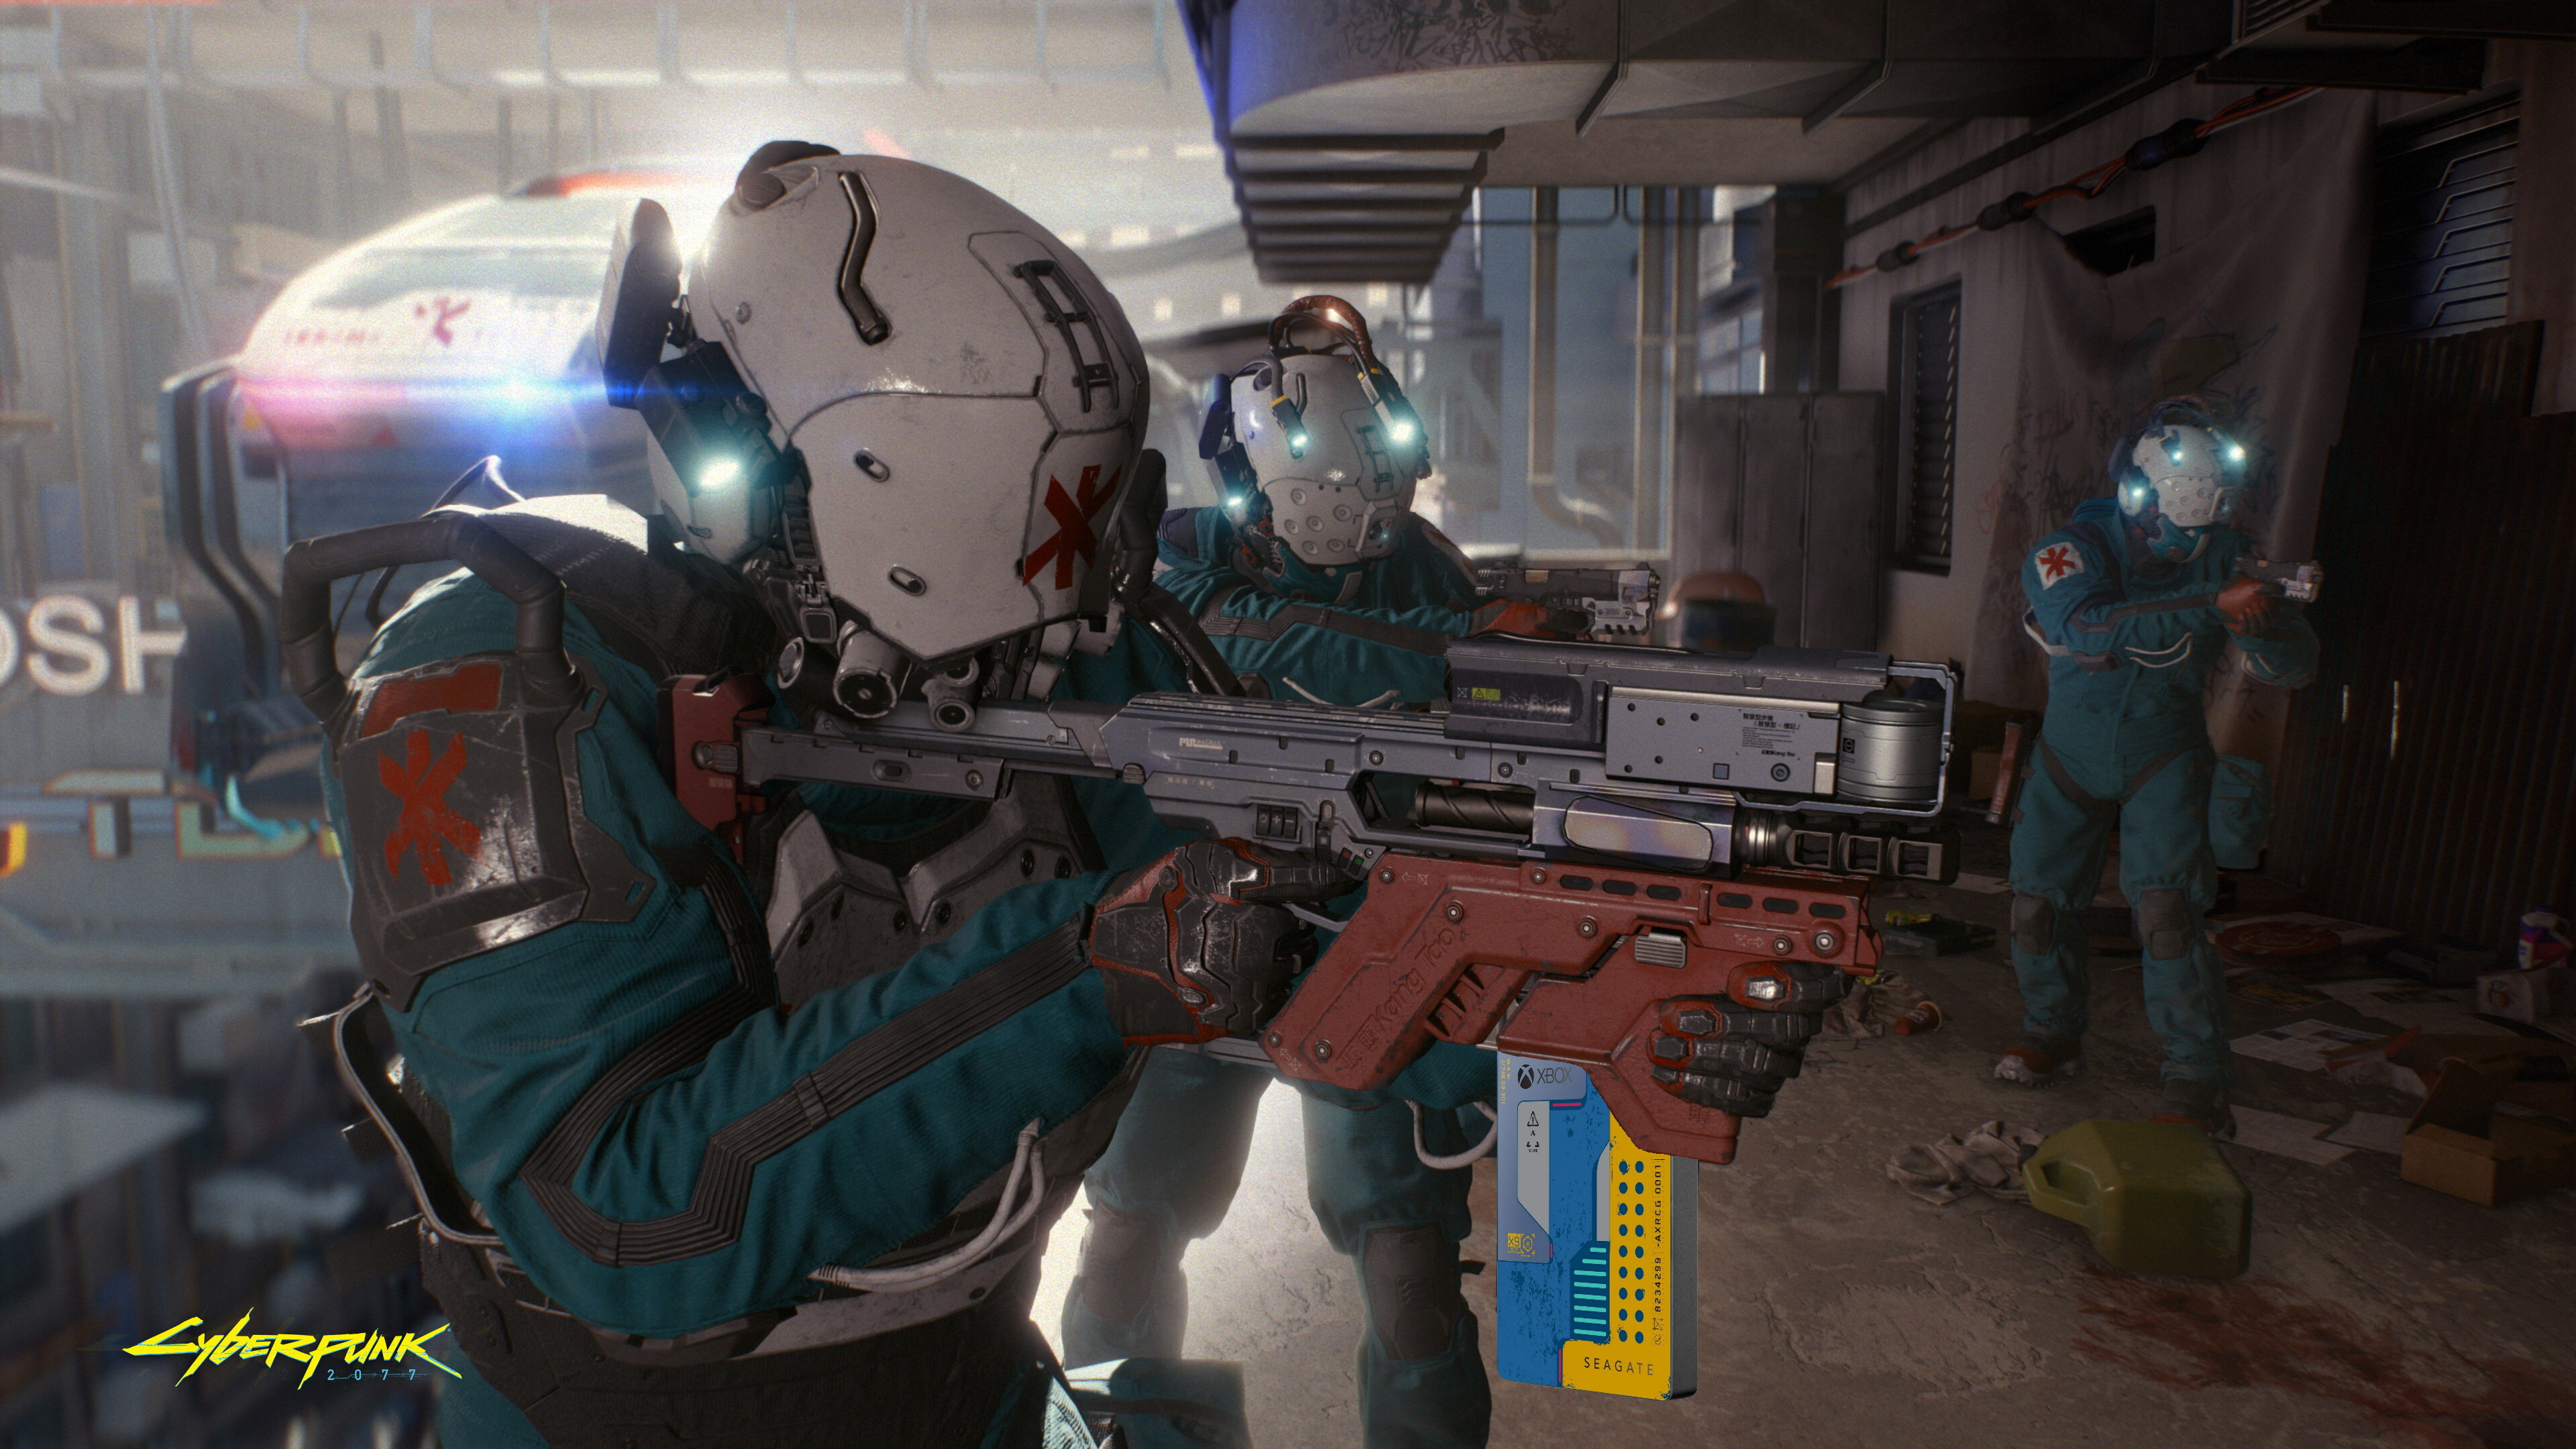 A militarised paramedic pointing a big gun, but the ammo clip is a blue and yellow Cyberpunk 2077 Seagate drive